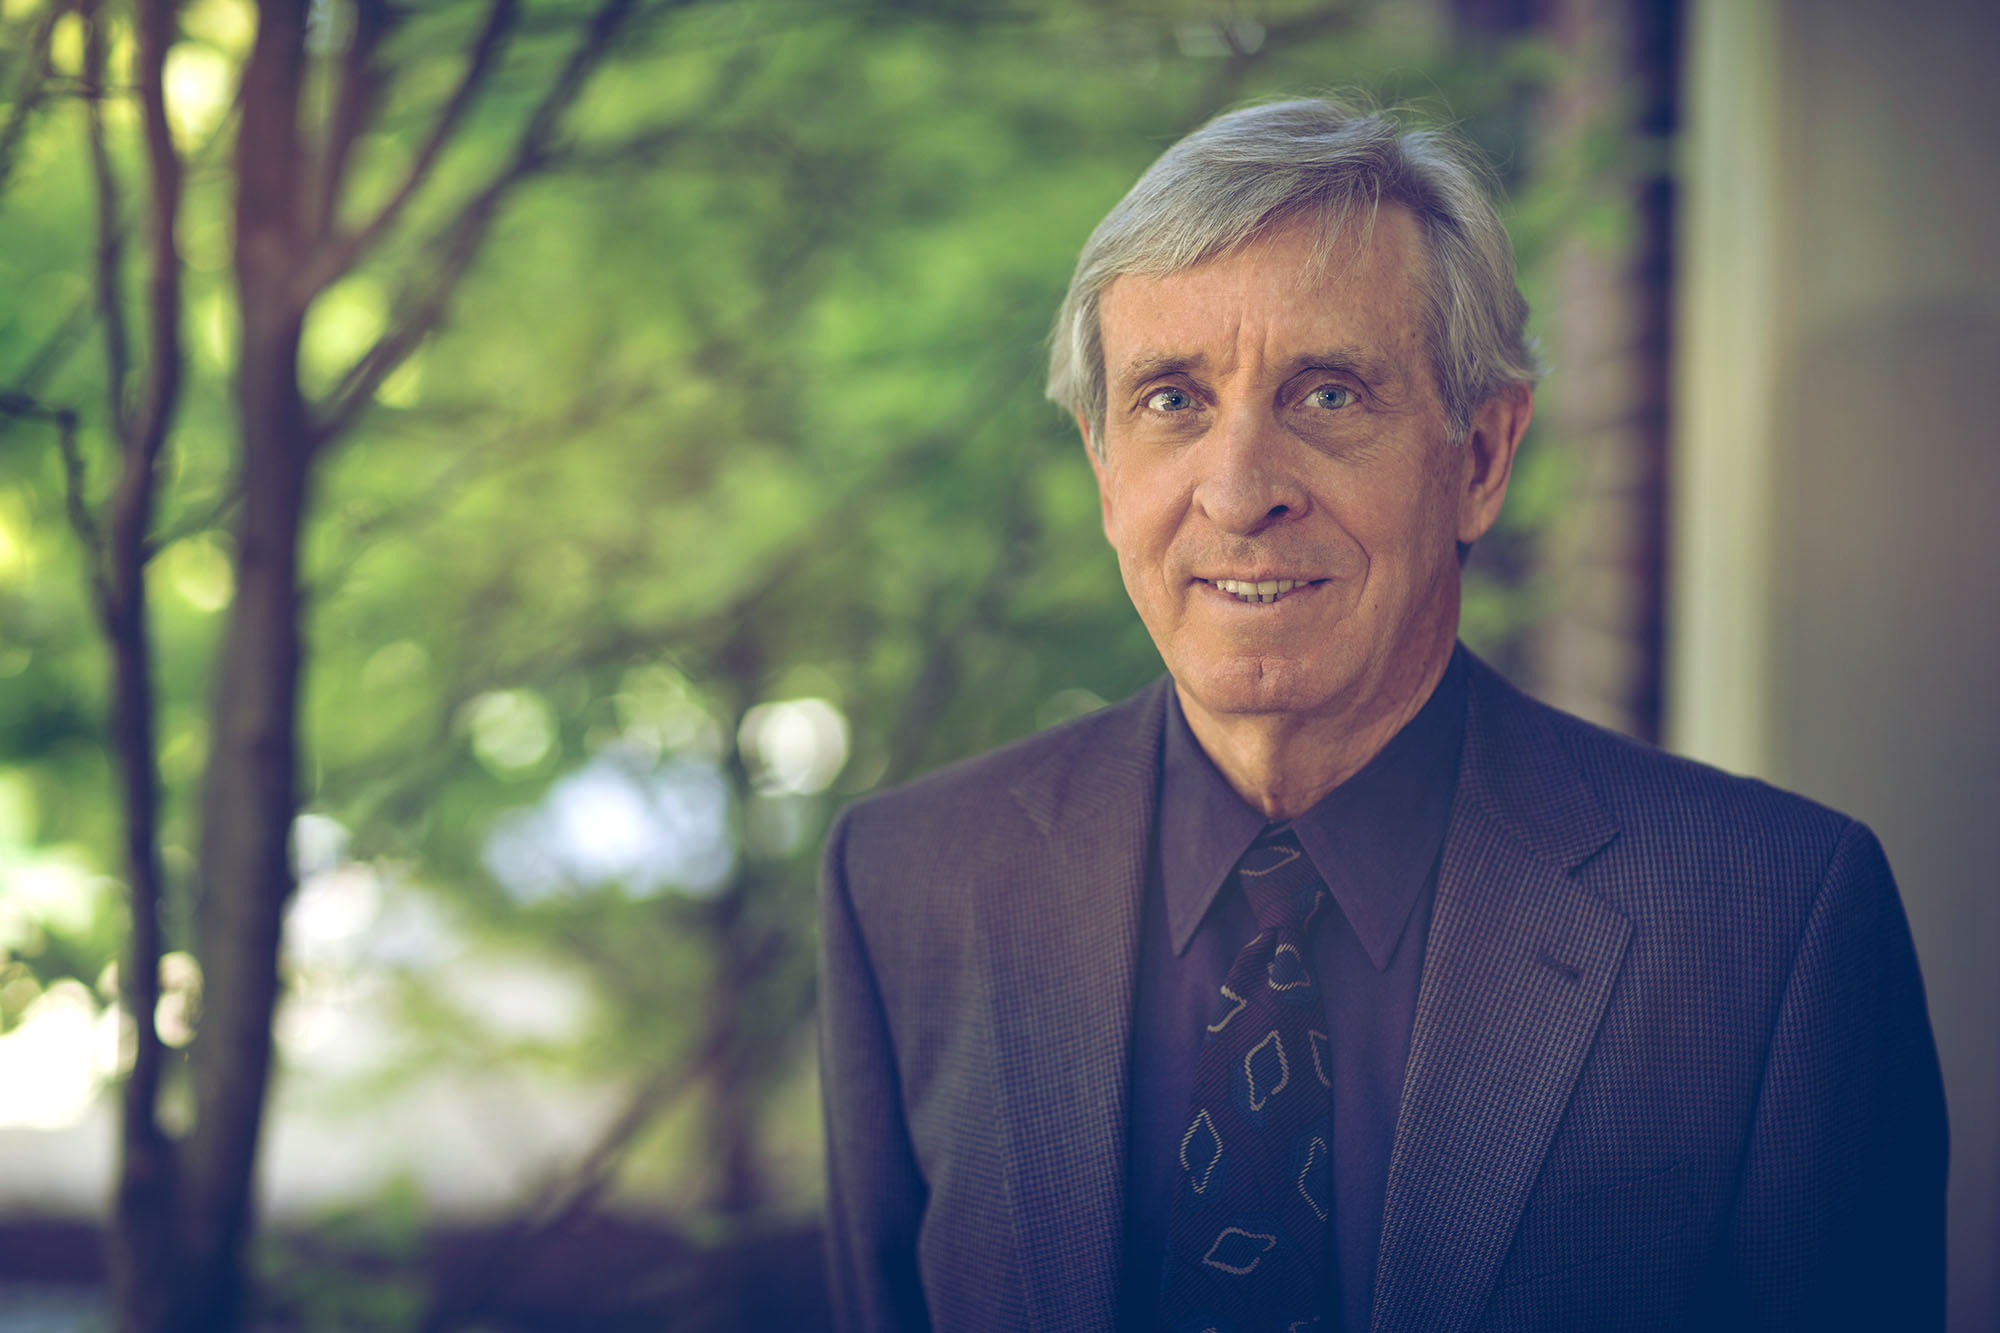 Caption: Gary Gallagher, the director of the John L. Nau Center for Civil War History, will host the center's first conference on Friday.